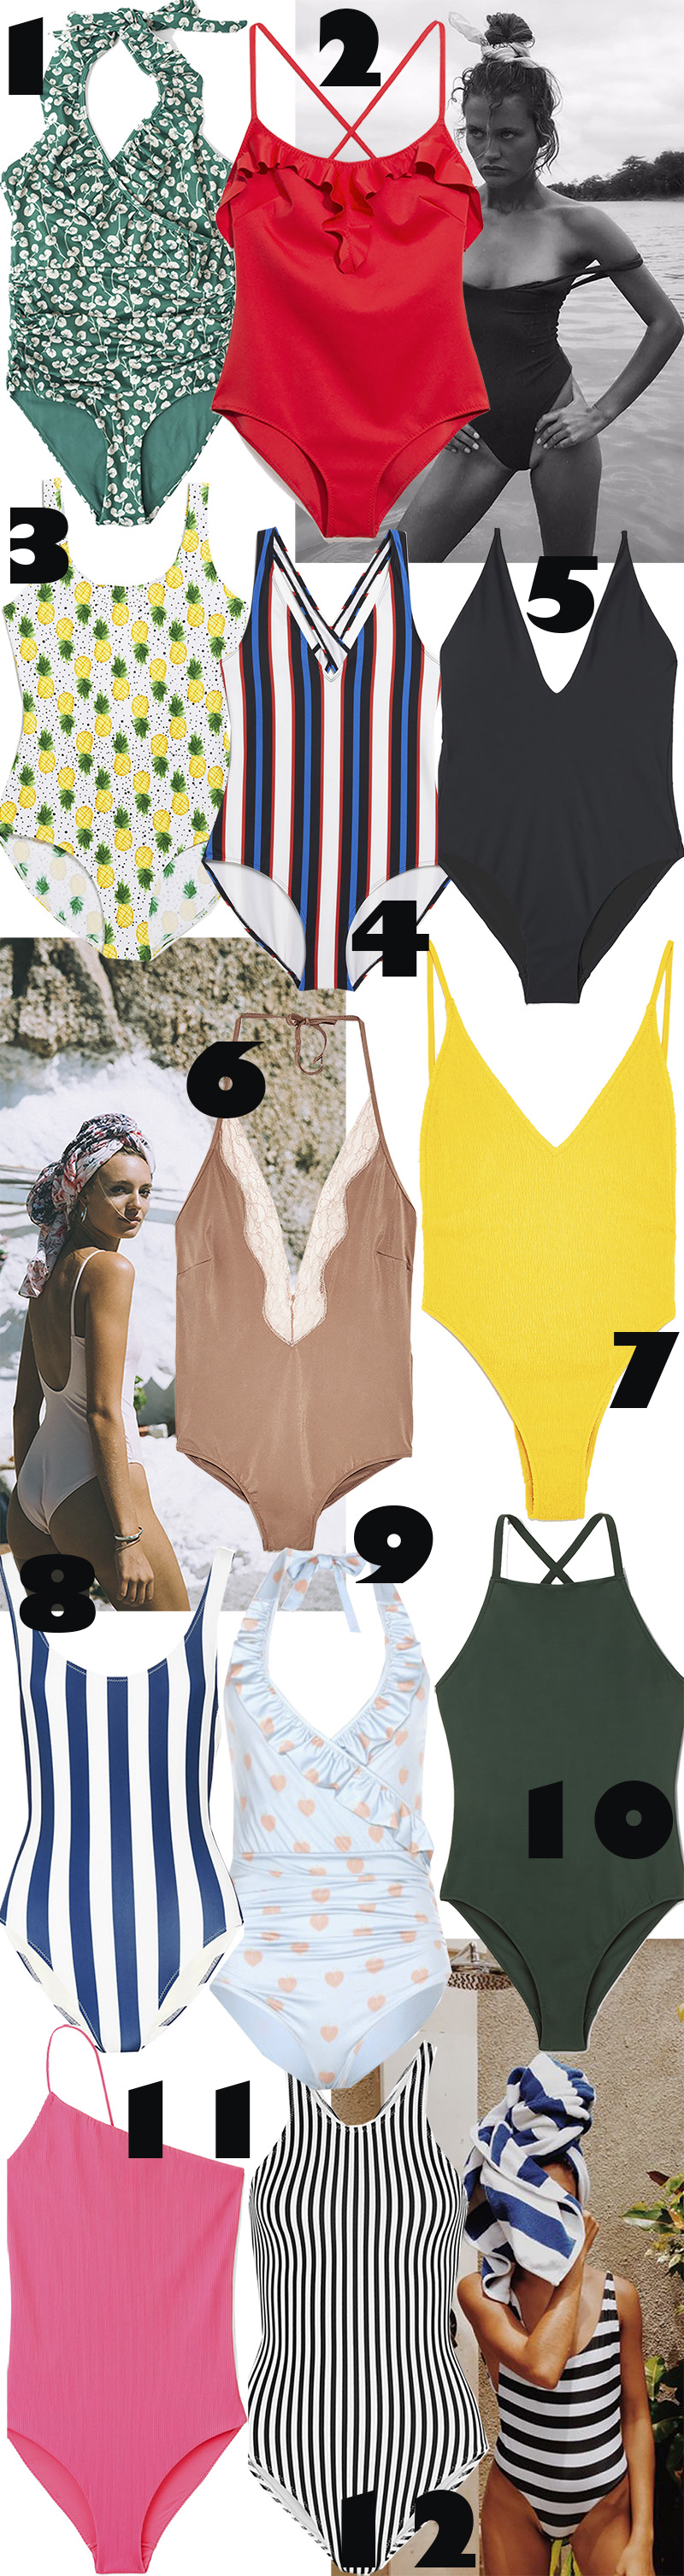 Eyes on: Swimsuits